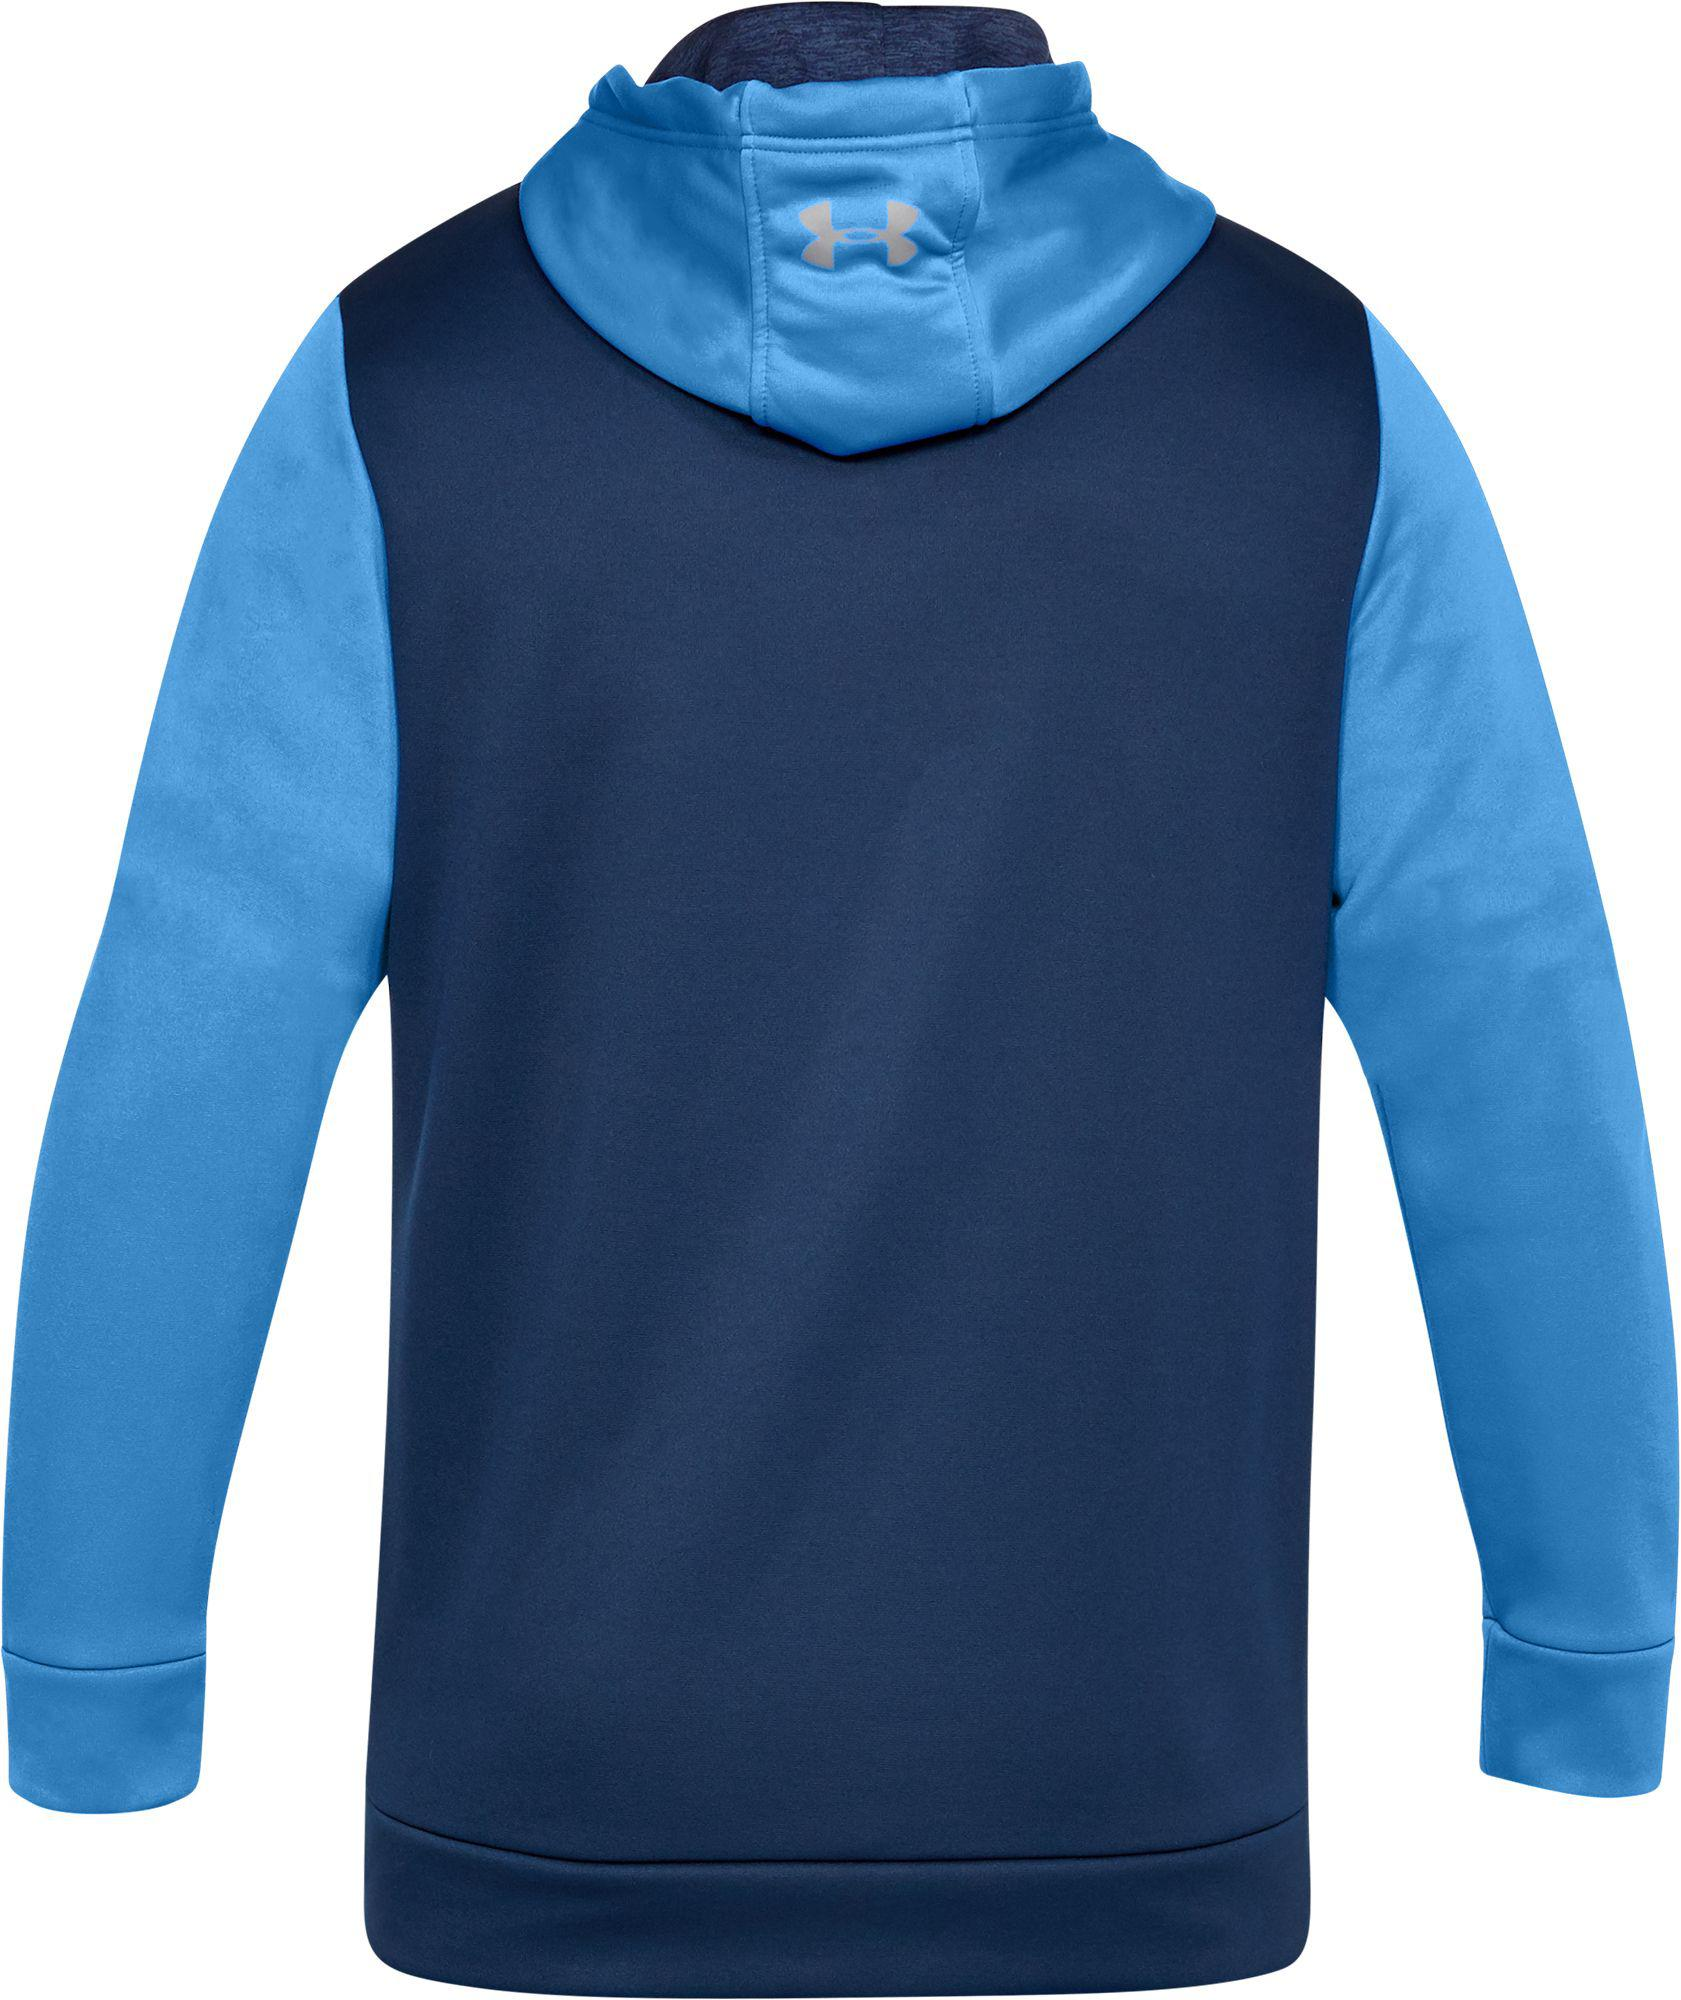 219b4a854 Under Armour - Blue Armour Fleece Icon Solid Pullover Hoodie for Men - Lyst